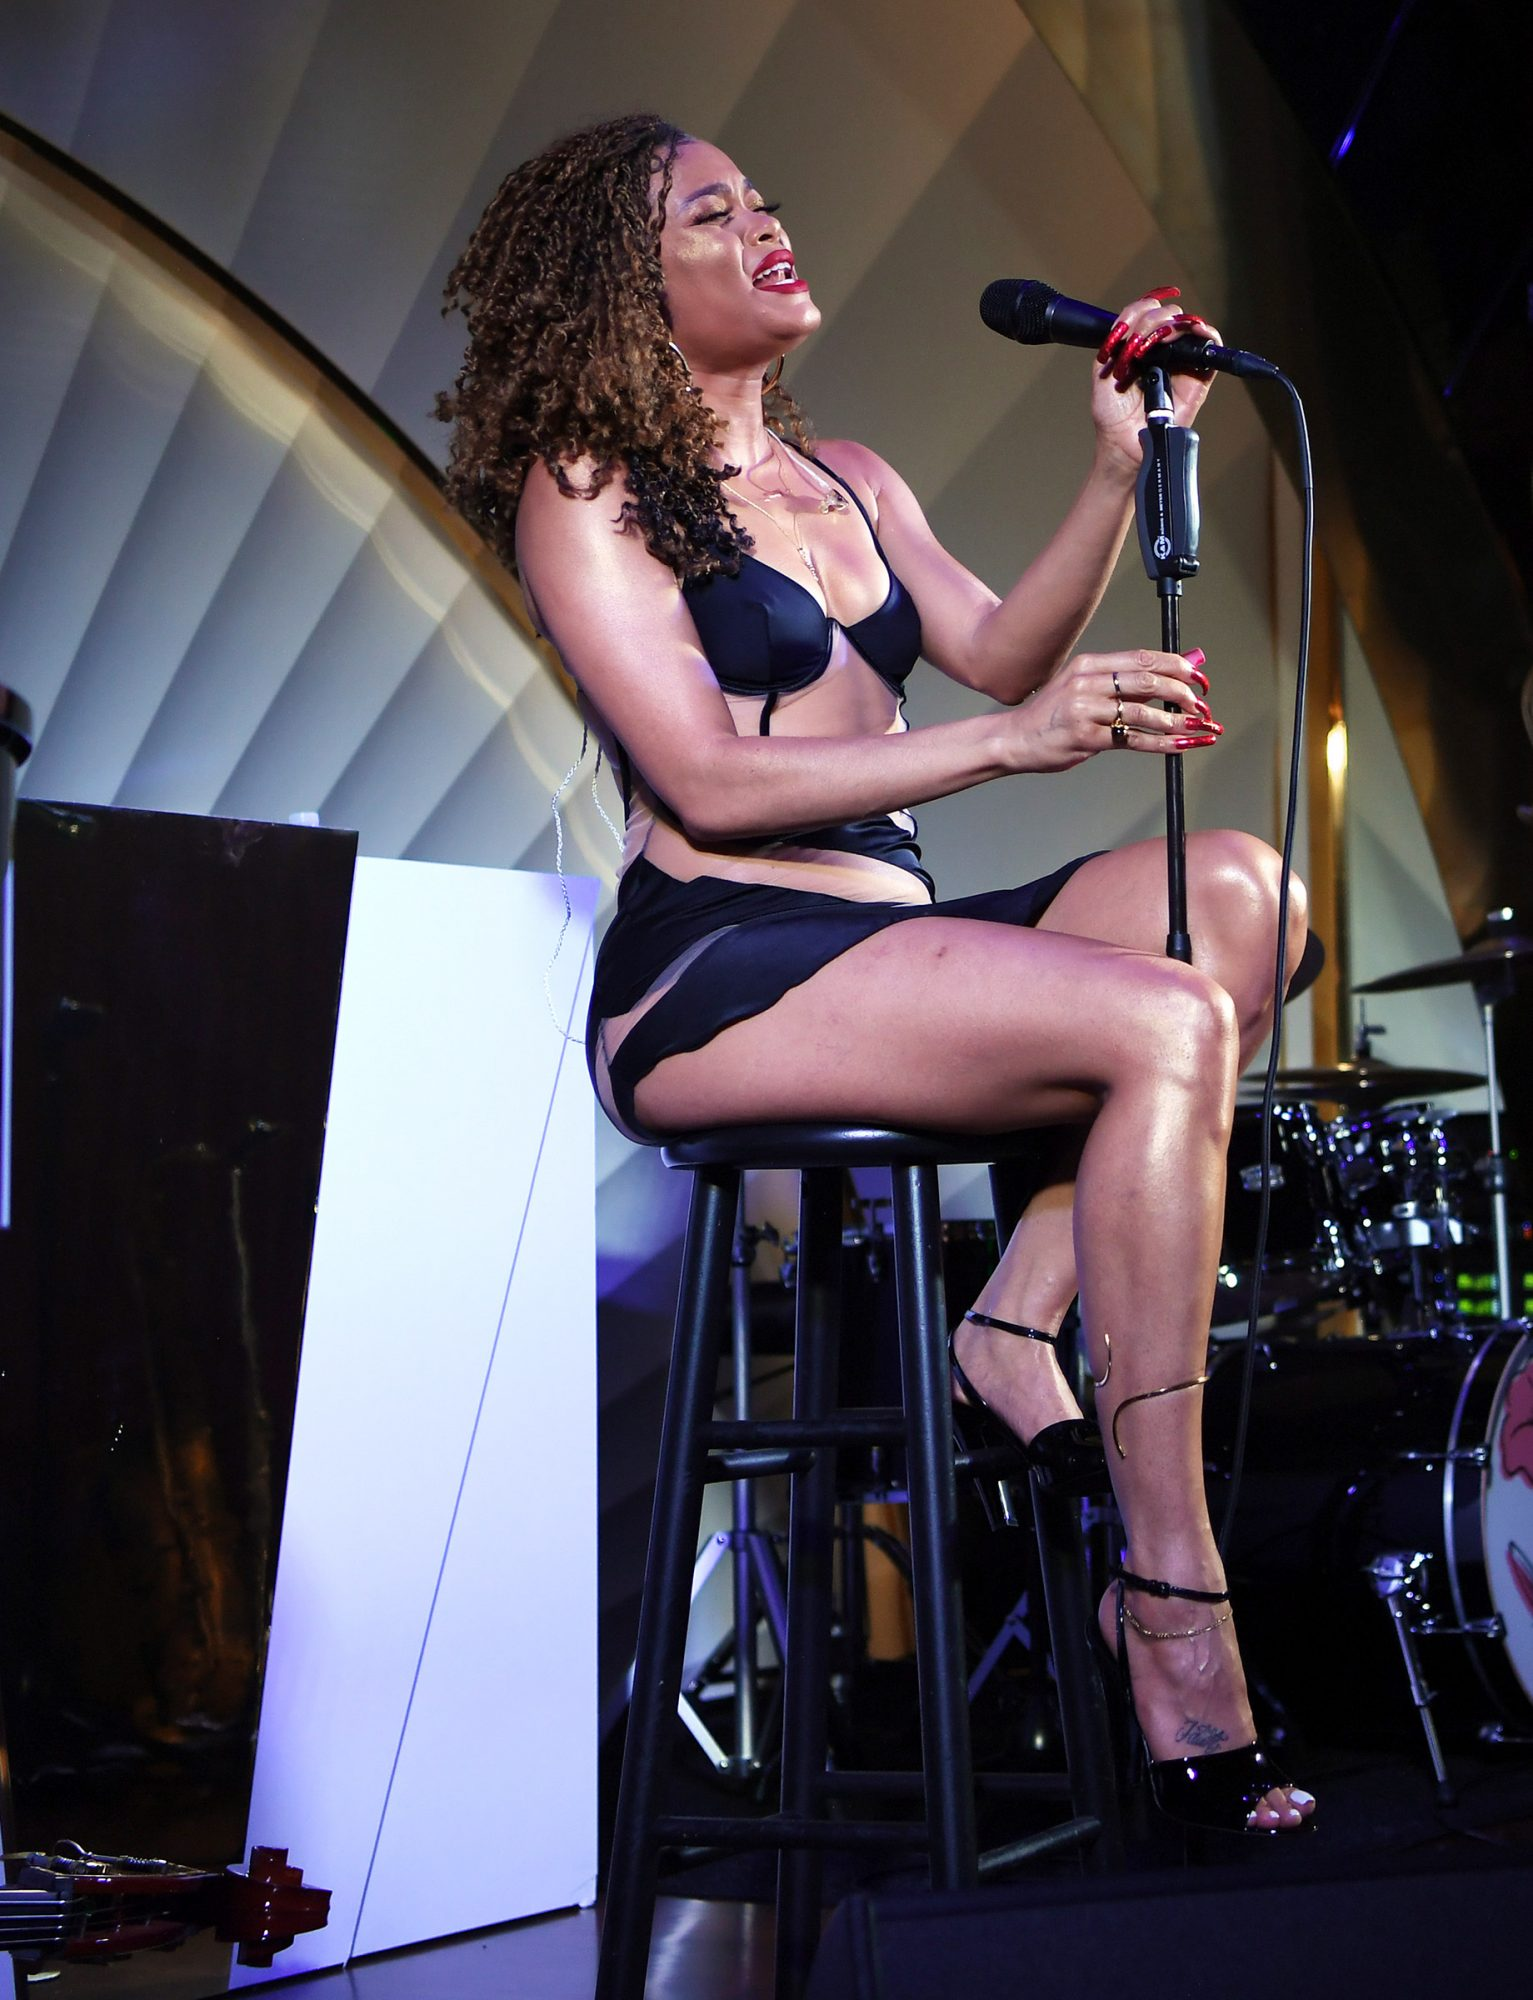 Andra Day performs onstage during Vegas Magazine's cover party with host Andra Day at h.wood Group's grand opening of Delilah at Wynn Las Vegas on July 08, 2021 in Las Vegas, Nevada